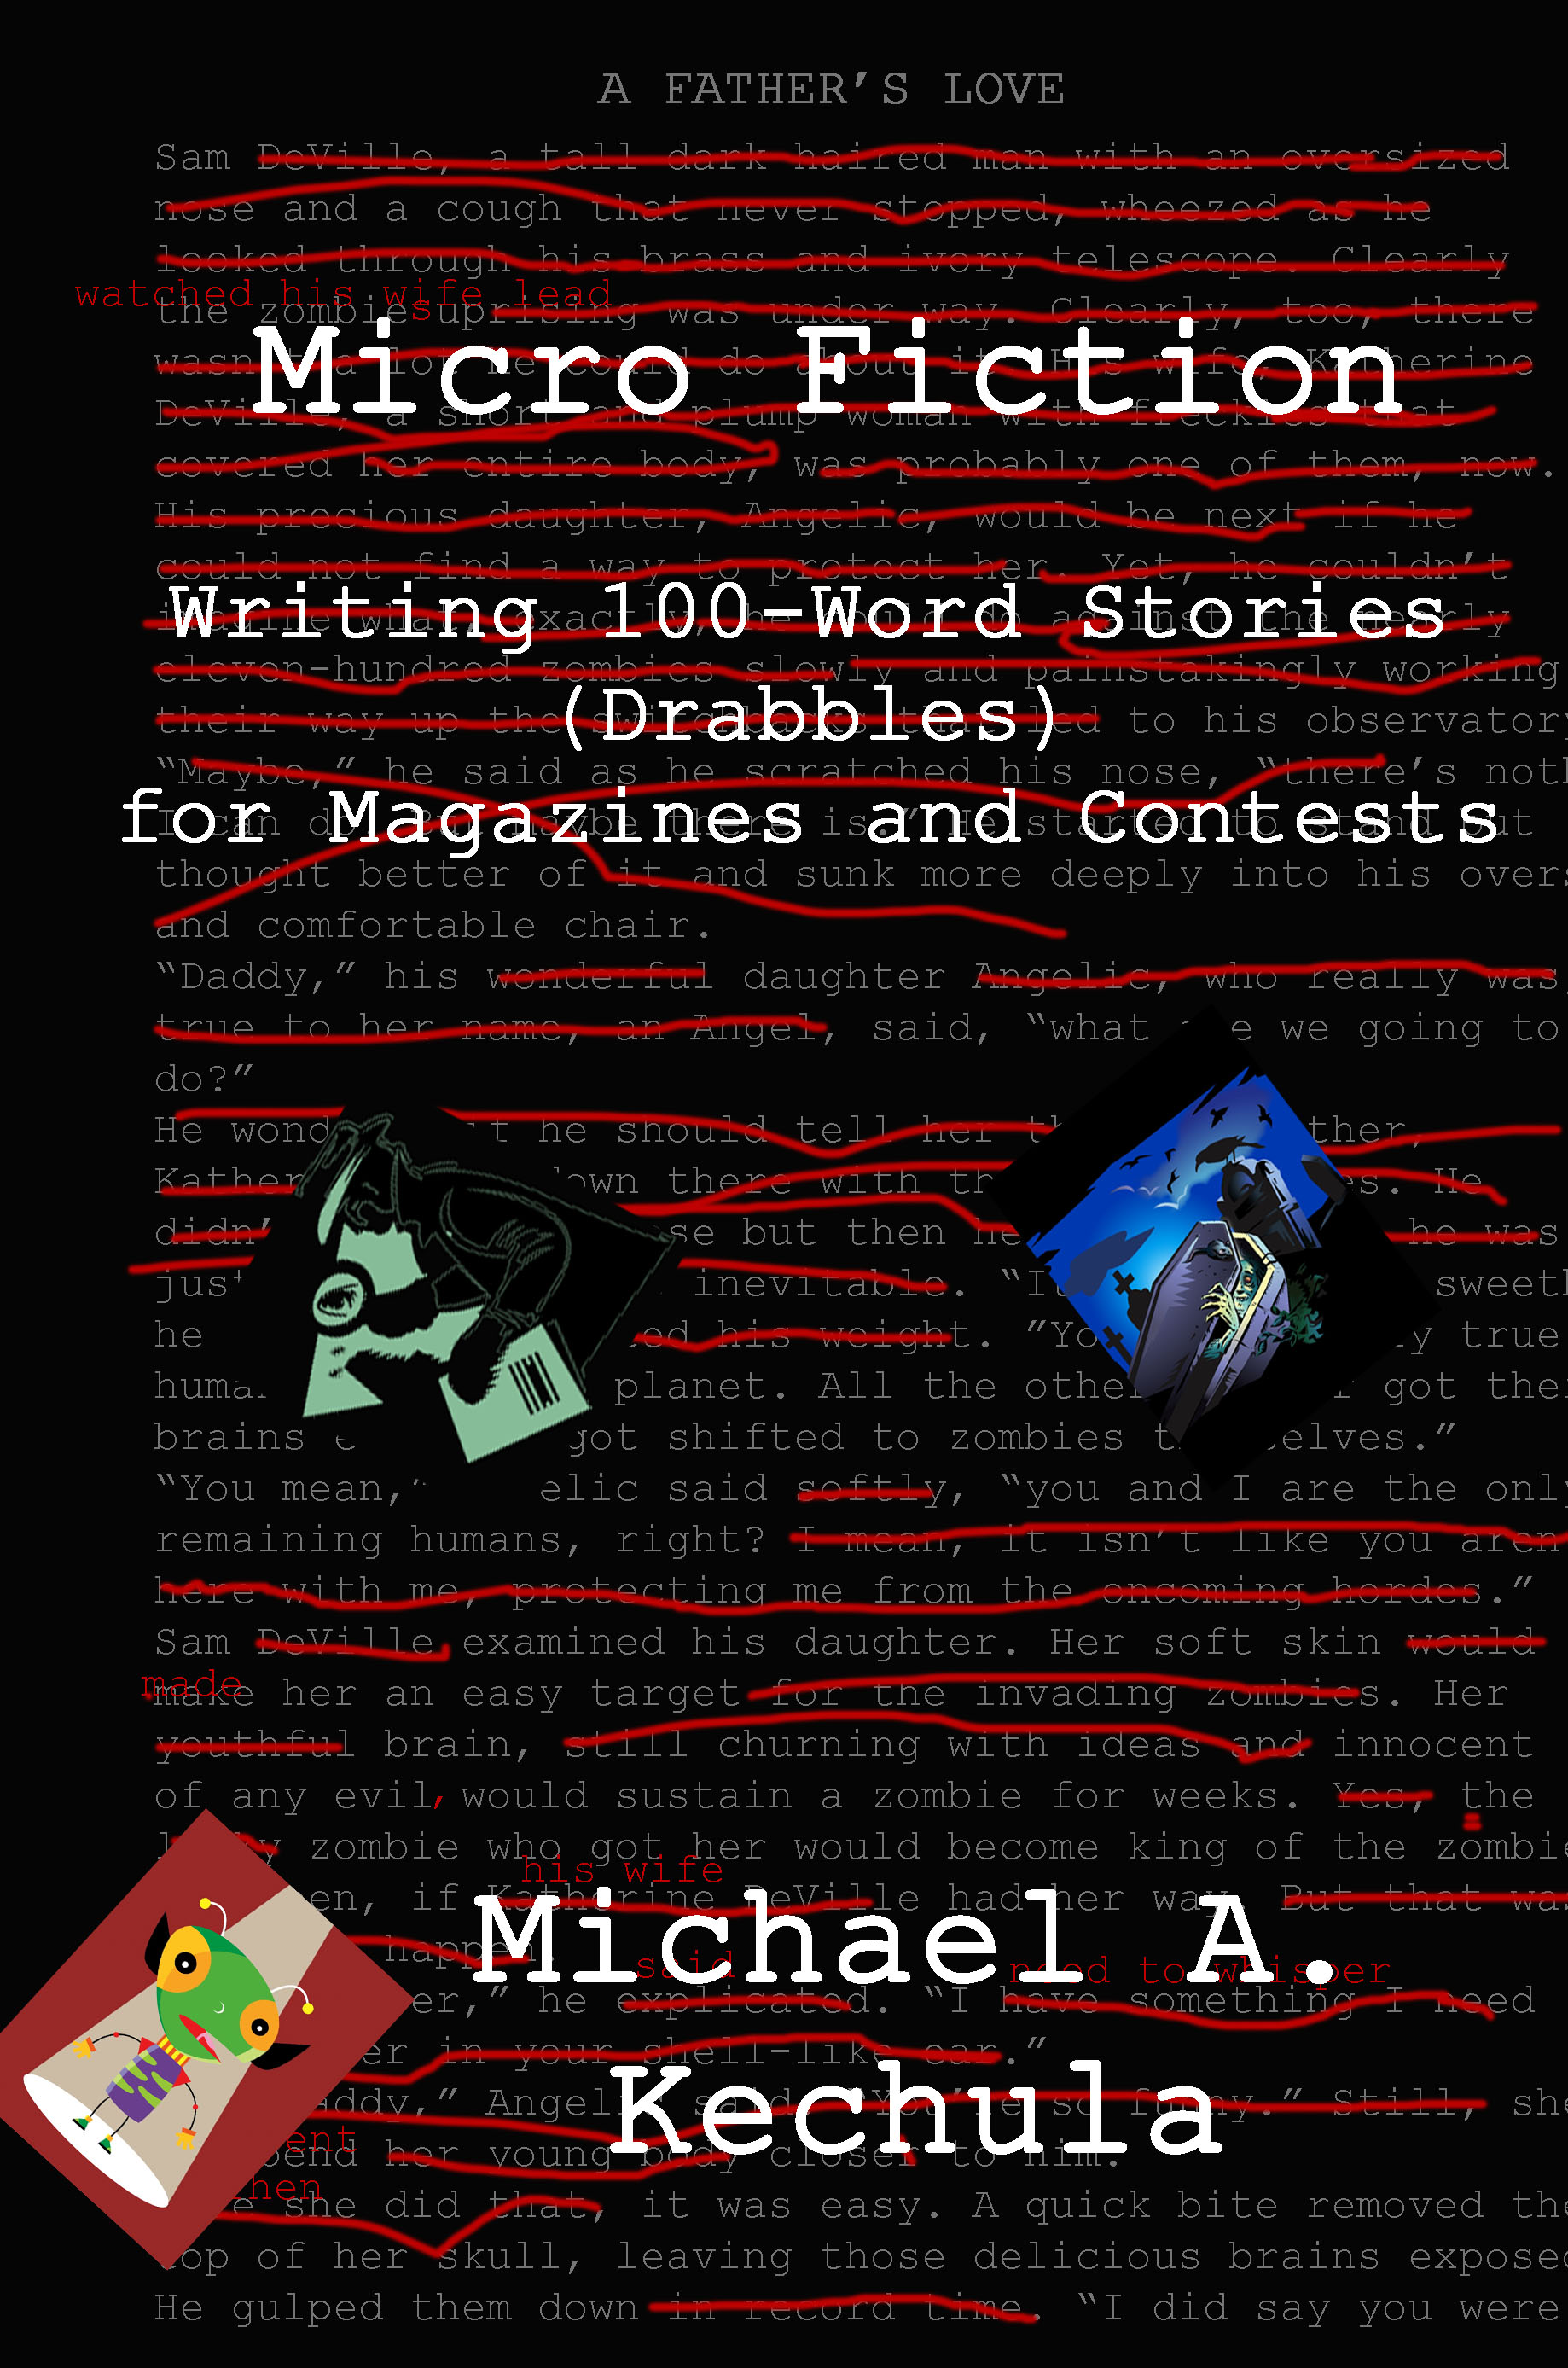 Micro Fiction: Writing 100-Word Stories (Drabbles) for Magazines and  Contests, an Ebook by Michael A  Kechula